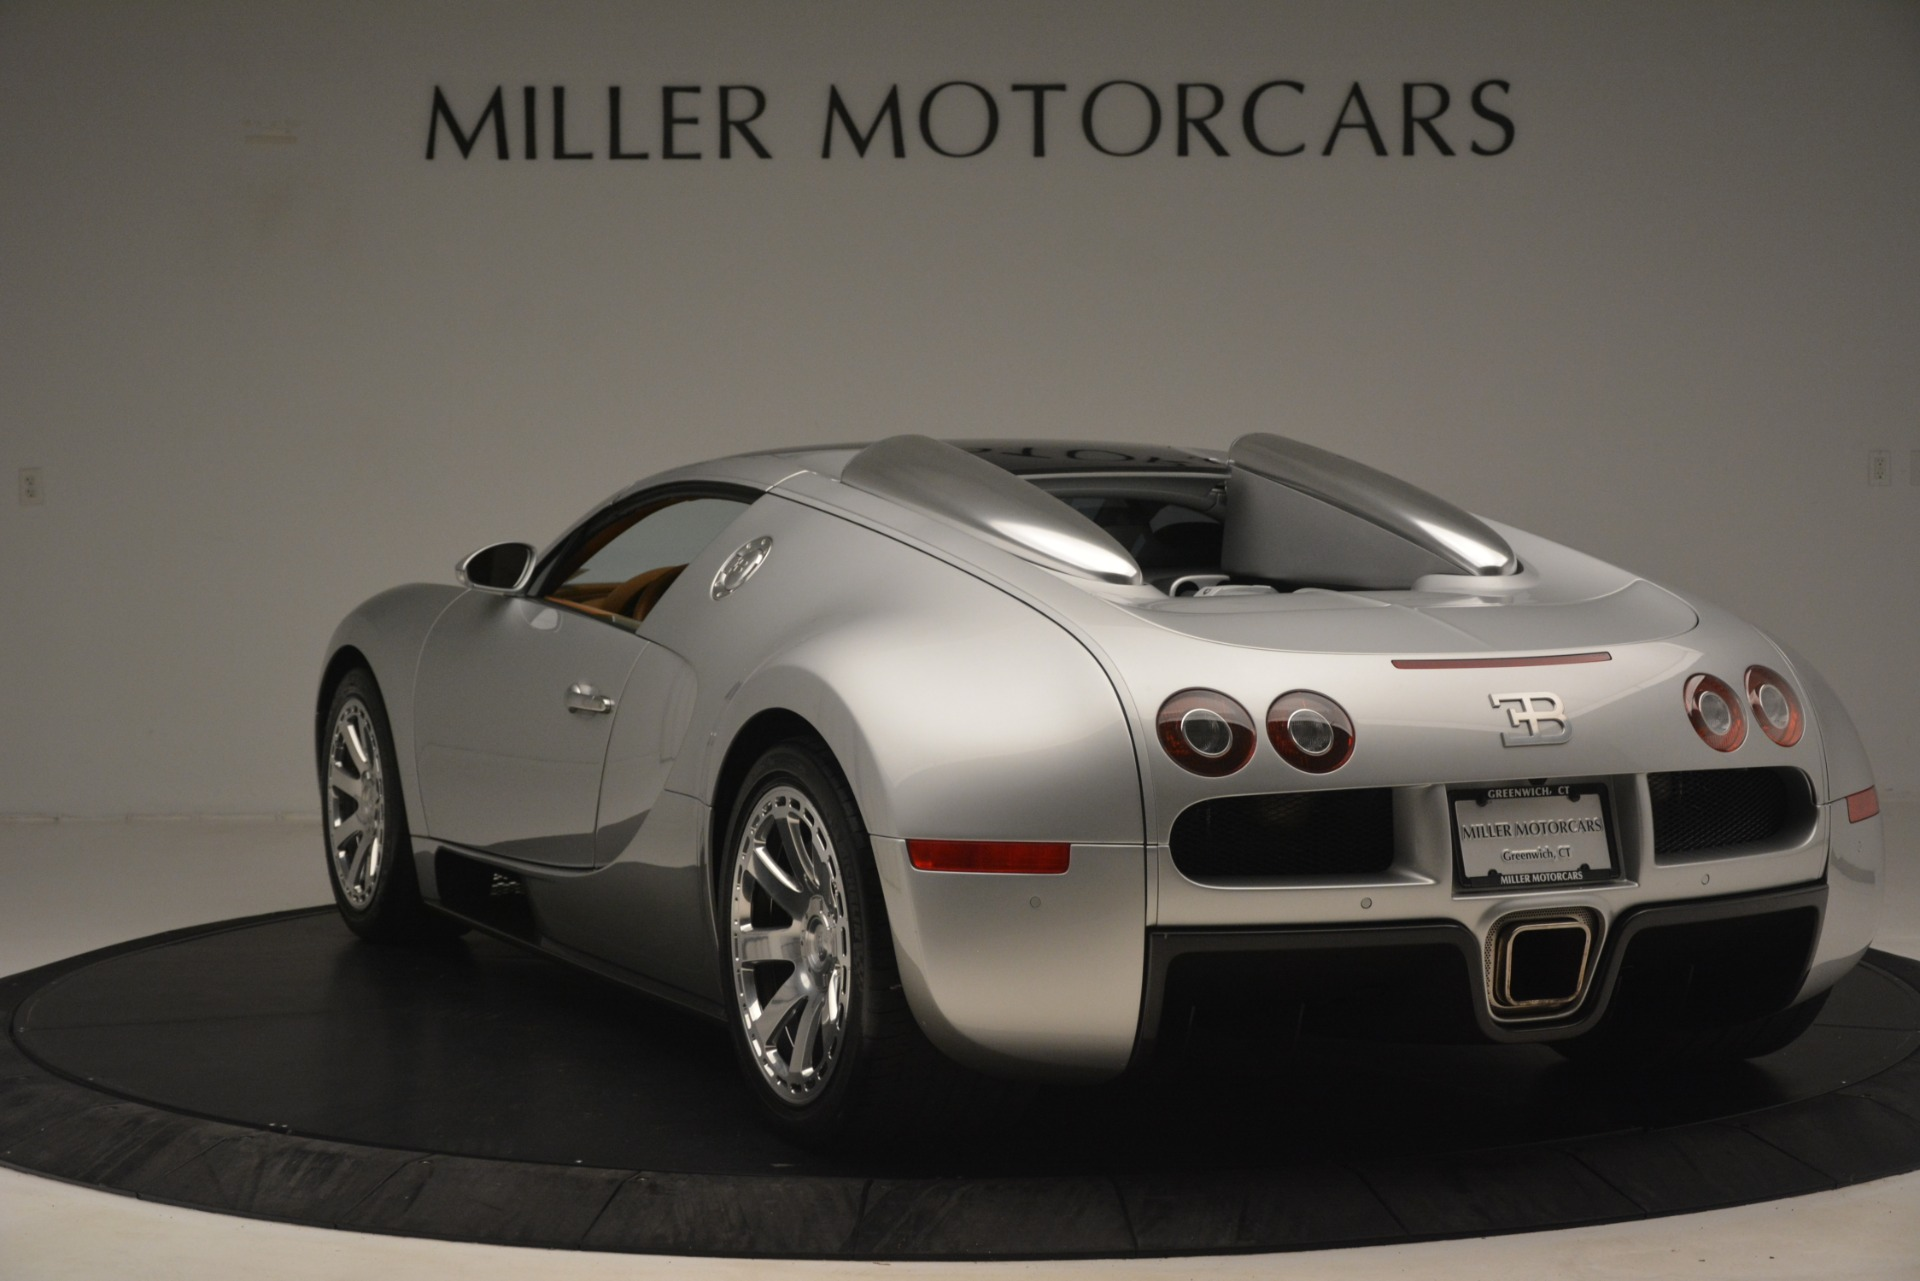 Used 2010 Bugatti Veyron 16.4 Grand Sport For Sale 1300000 In Greenwich, CT